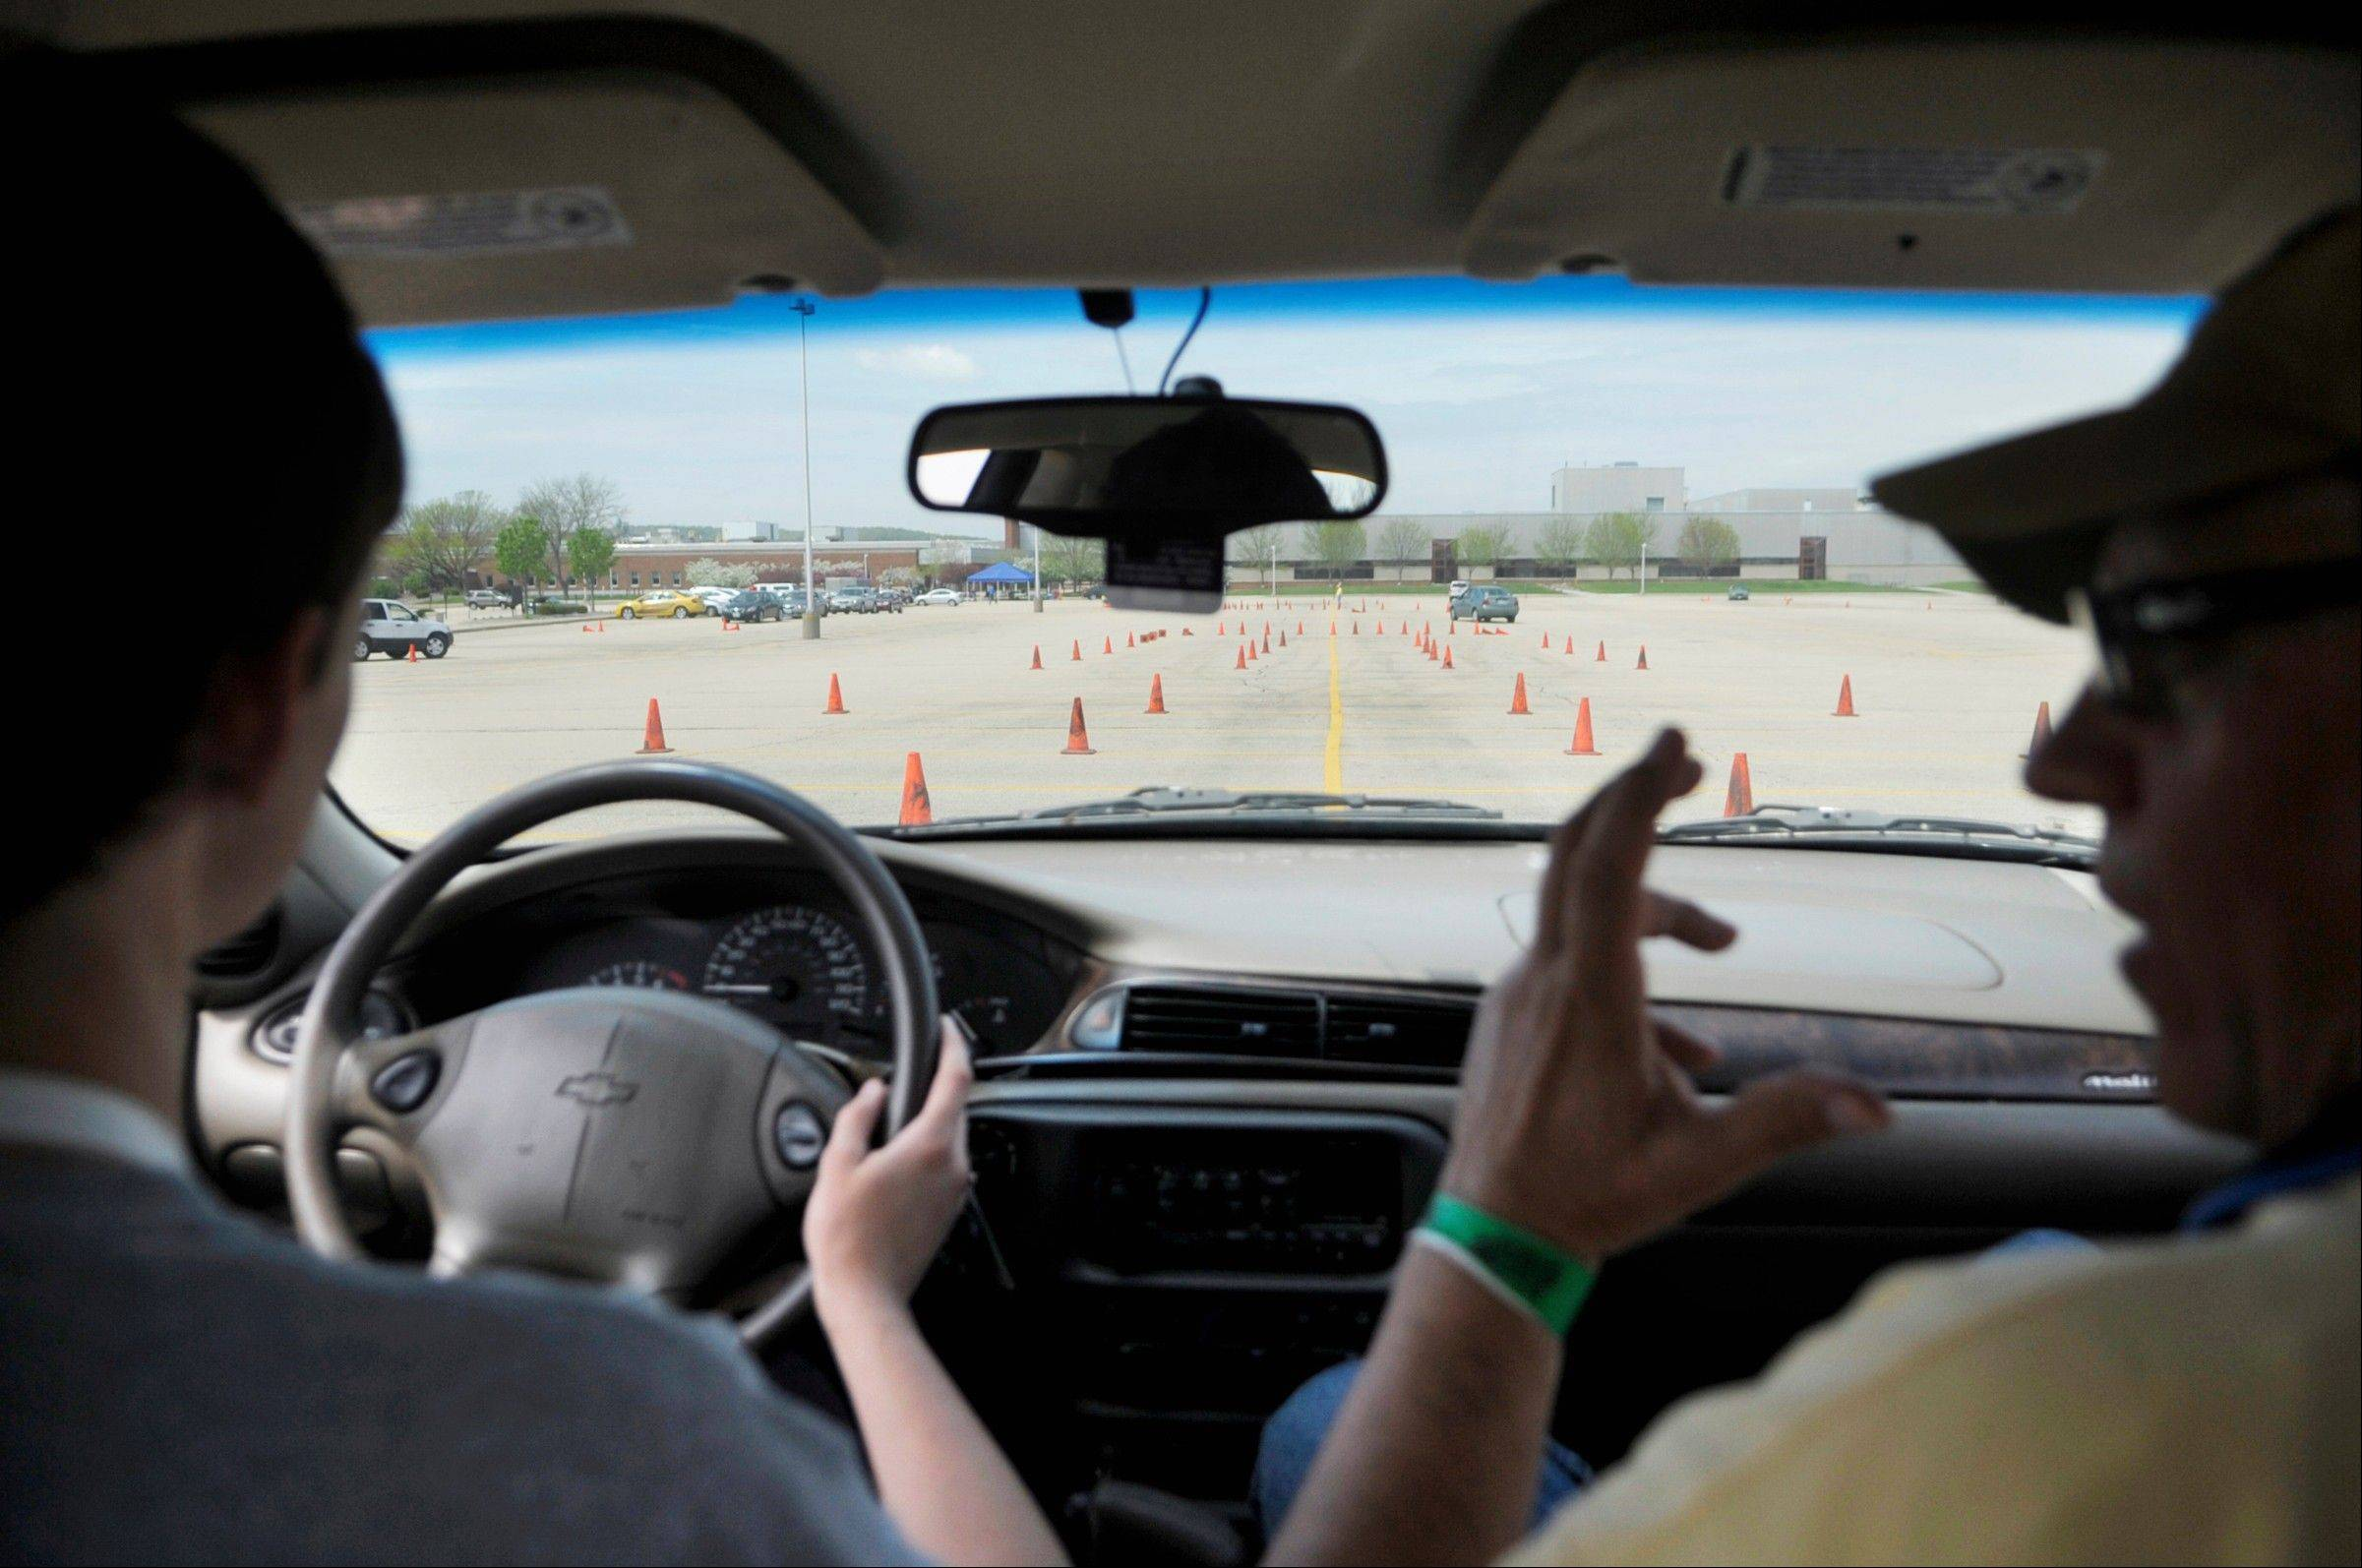 Colin Flaherty, 17, of Peoria talks with driving instructor Steve Smart, right, before maneuvering his car through cones at the Tire Rack Street Survival teen driving program at Caterpillar's Mossville plant.